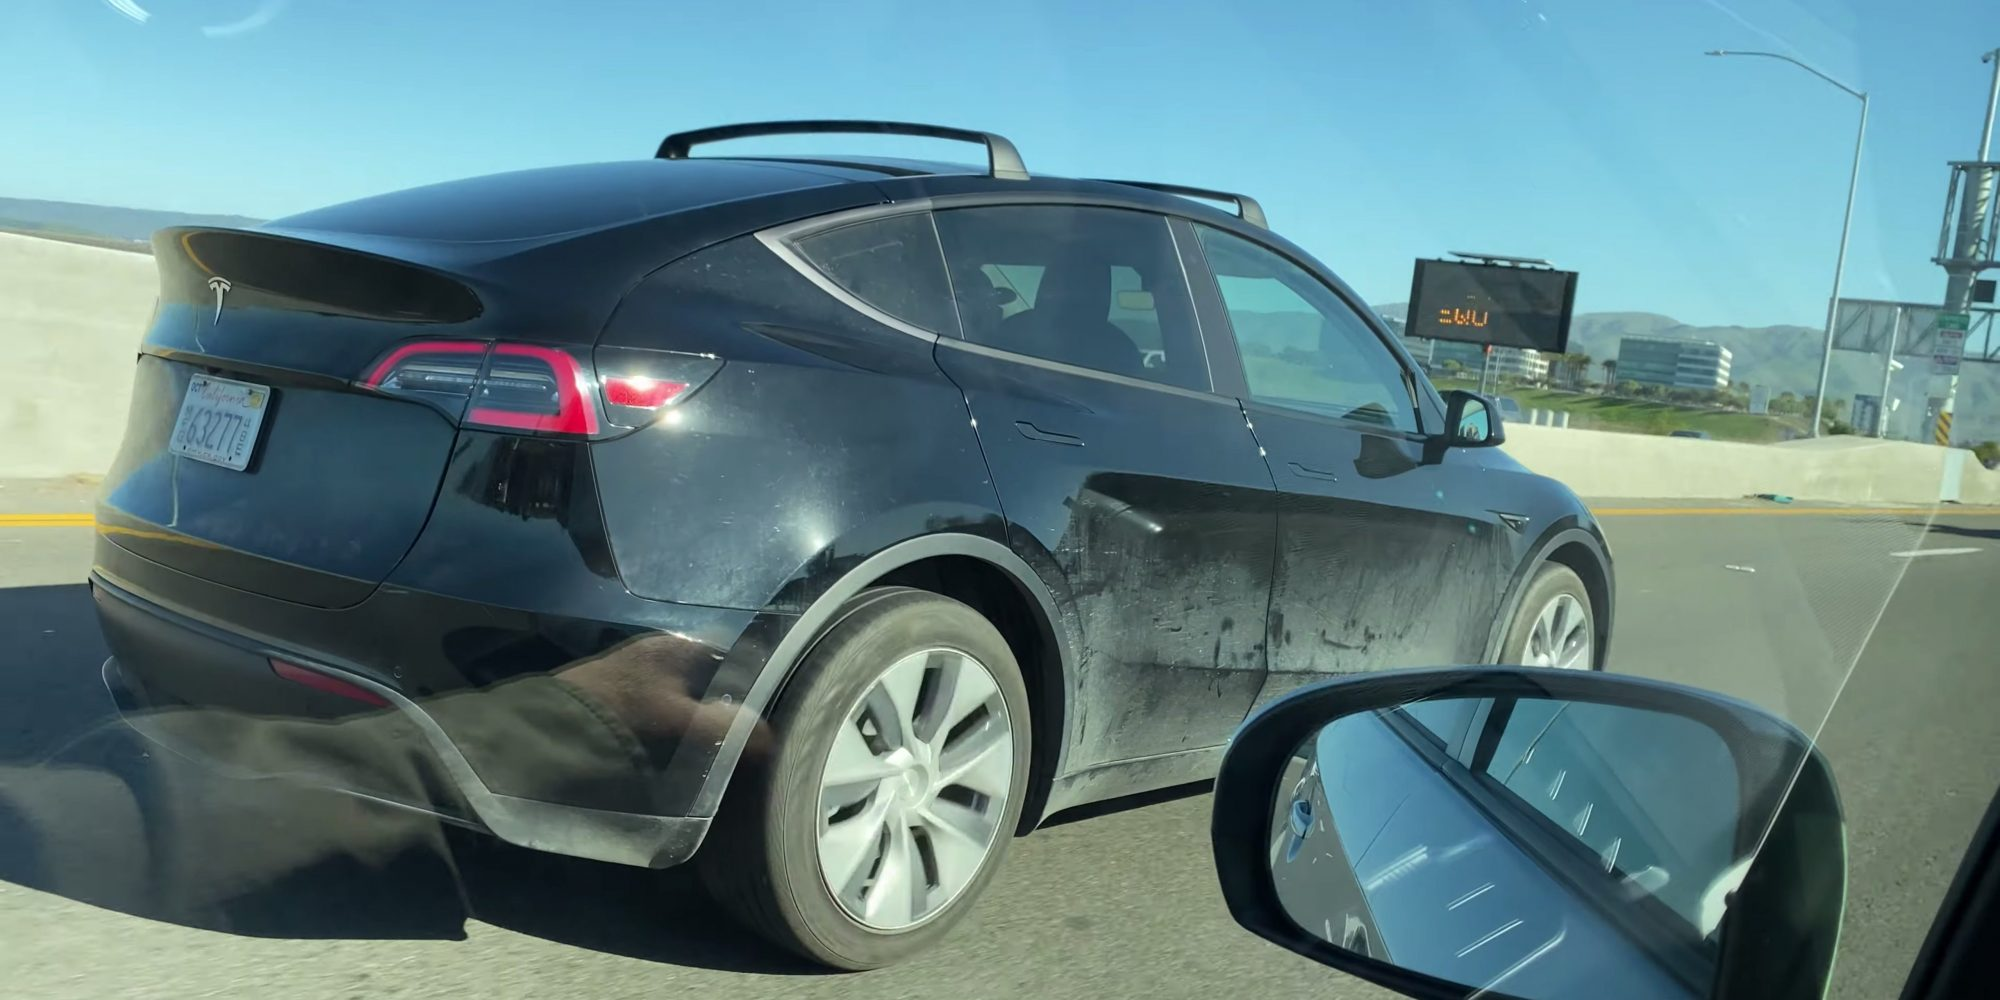 photo of First sighting surfaces of Model Y with roof rack in advance of launch image